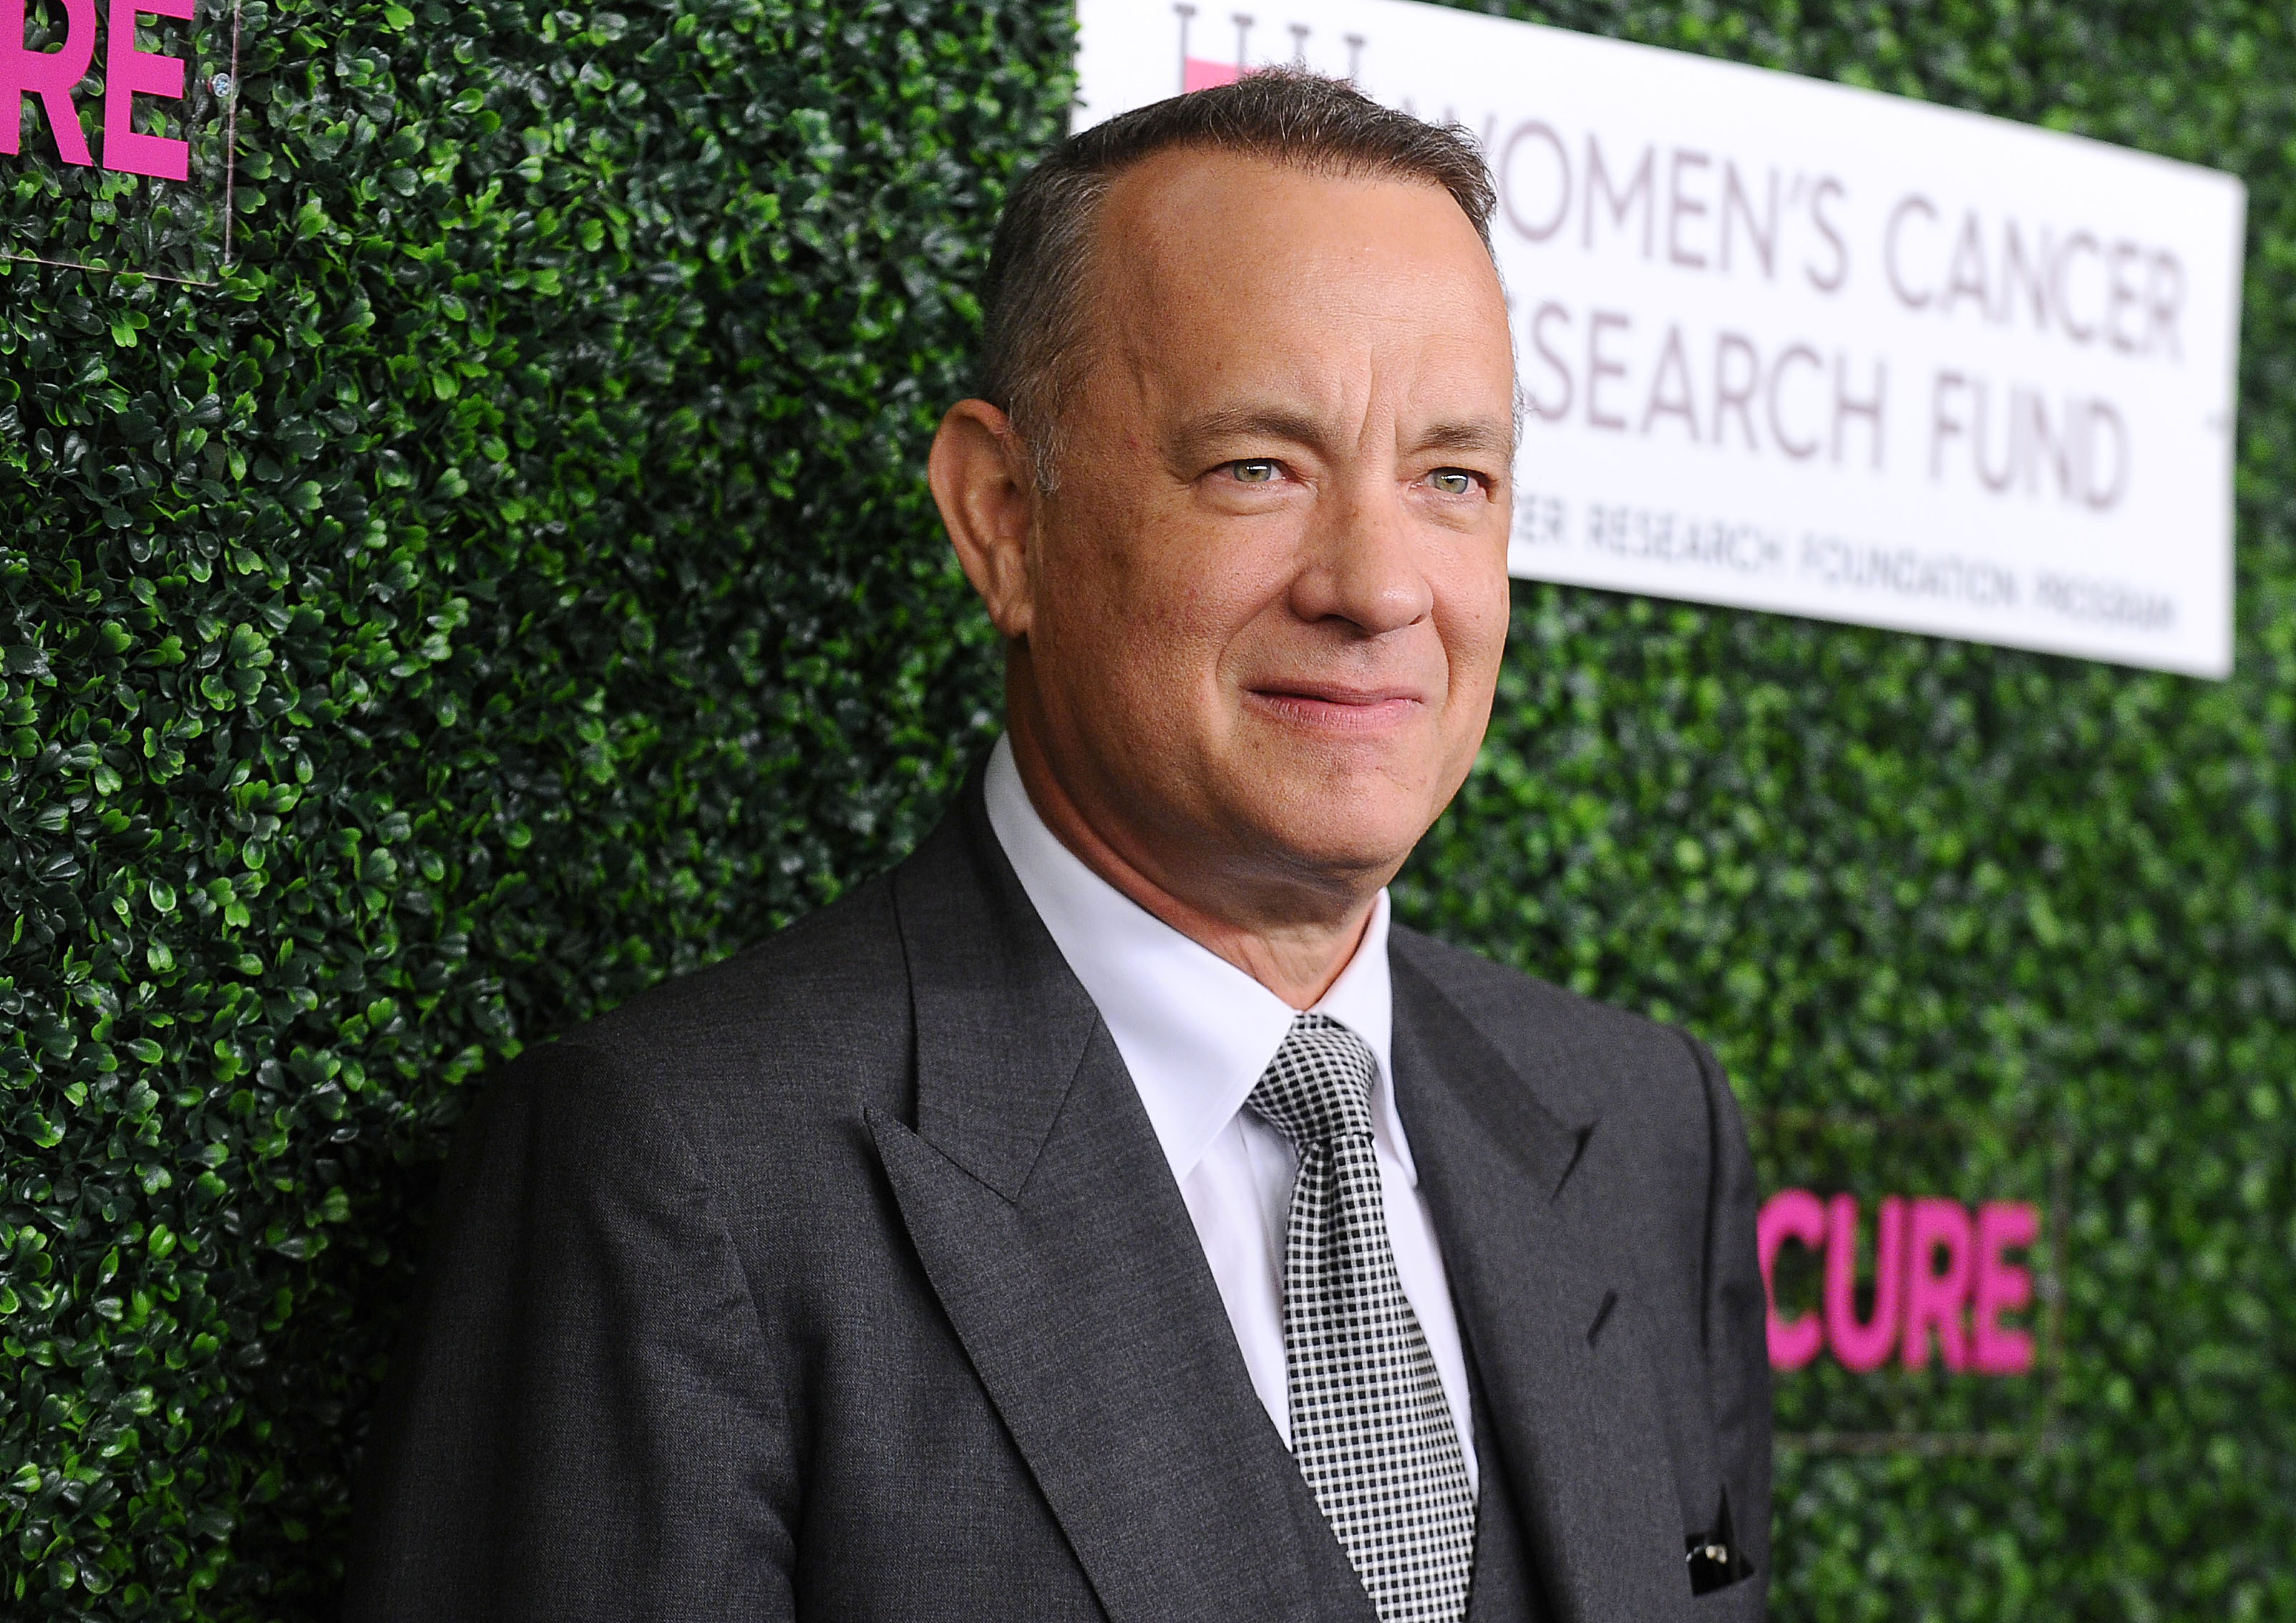 Actor Tom Hanks attends An Unforgettable Evening at the Beverly Wilshire Four Seasons Hotel on February 16, 2017 in Beverly Hills, California.